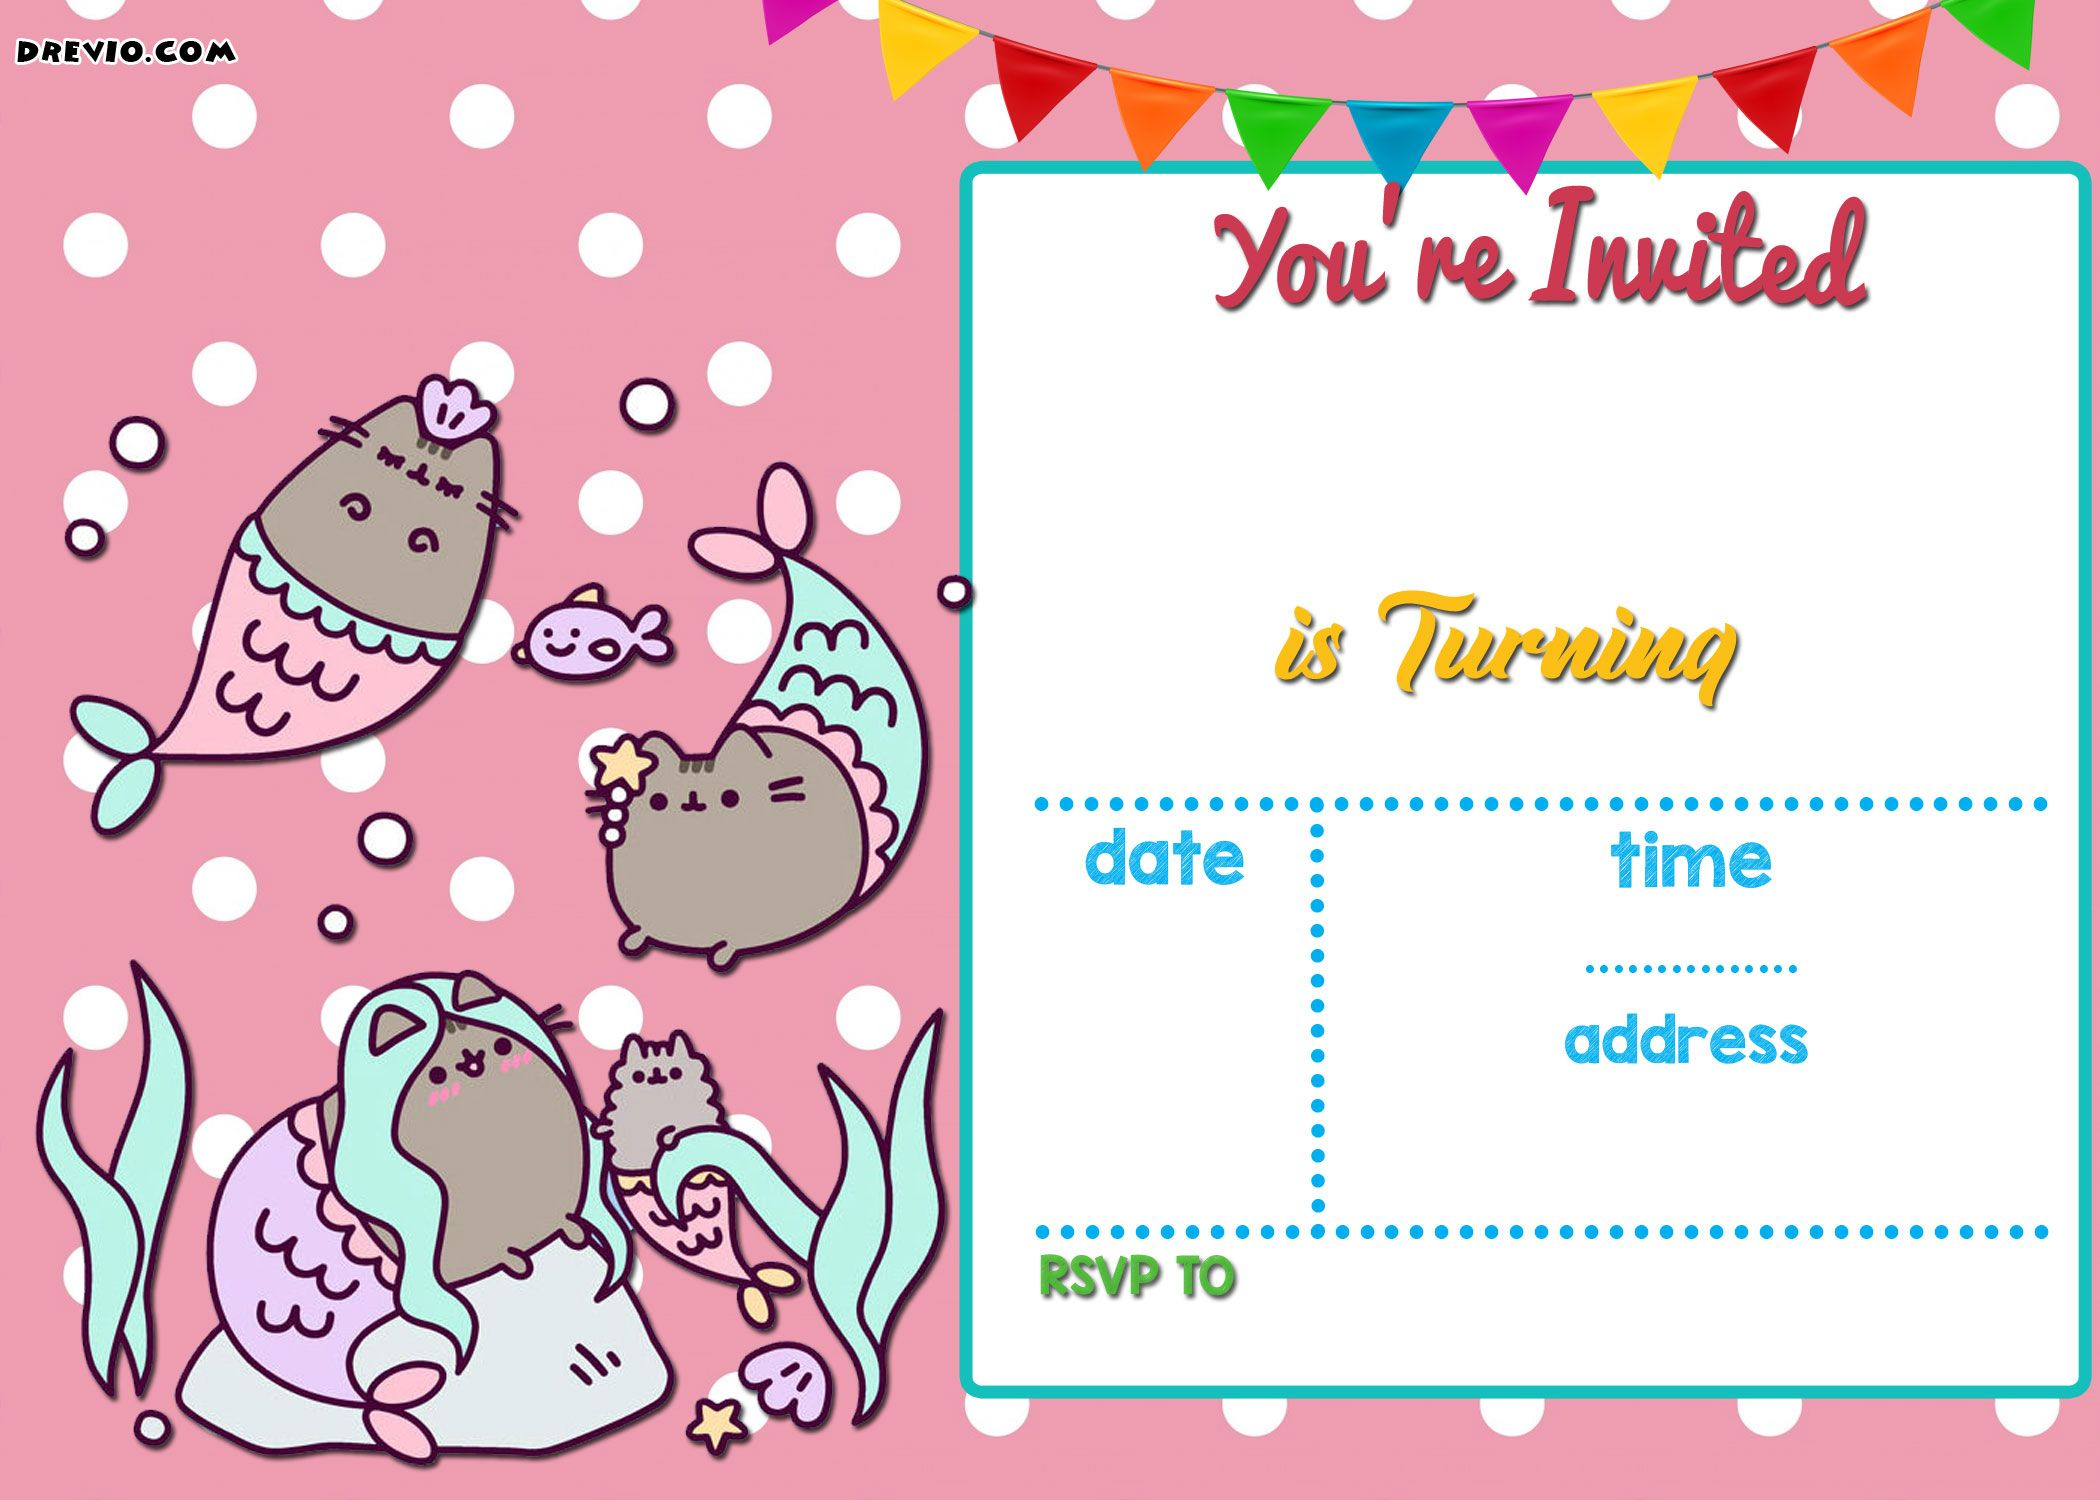 FREE Mermaid Pusheen Invitation Templates  Pirate party